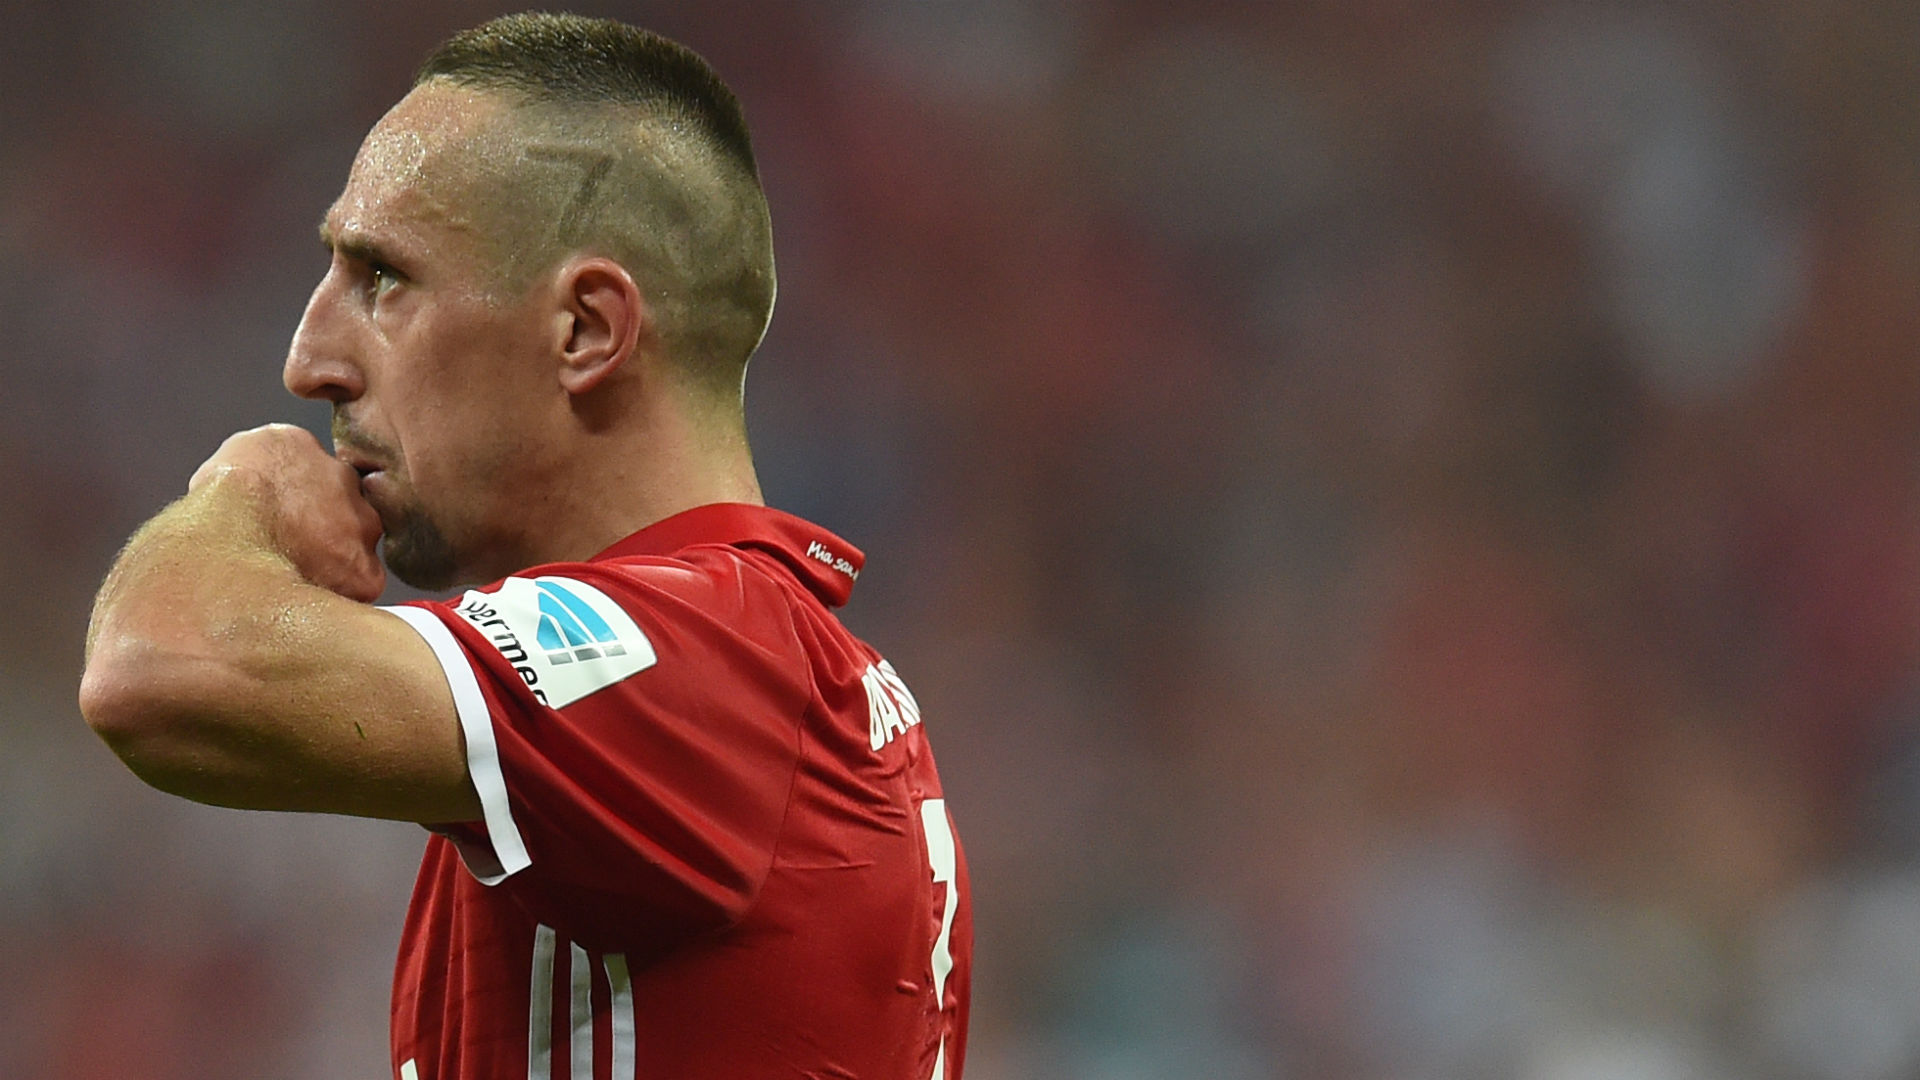 ... to his brilliant best – Father Ancelotti has Ribery flying again